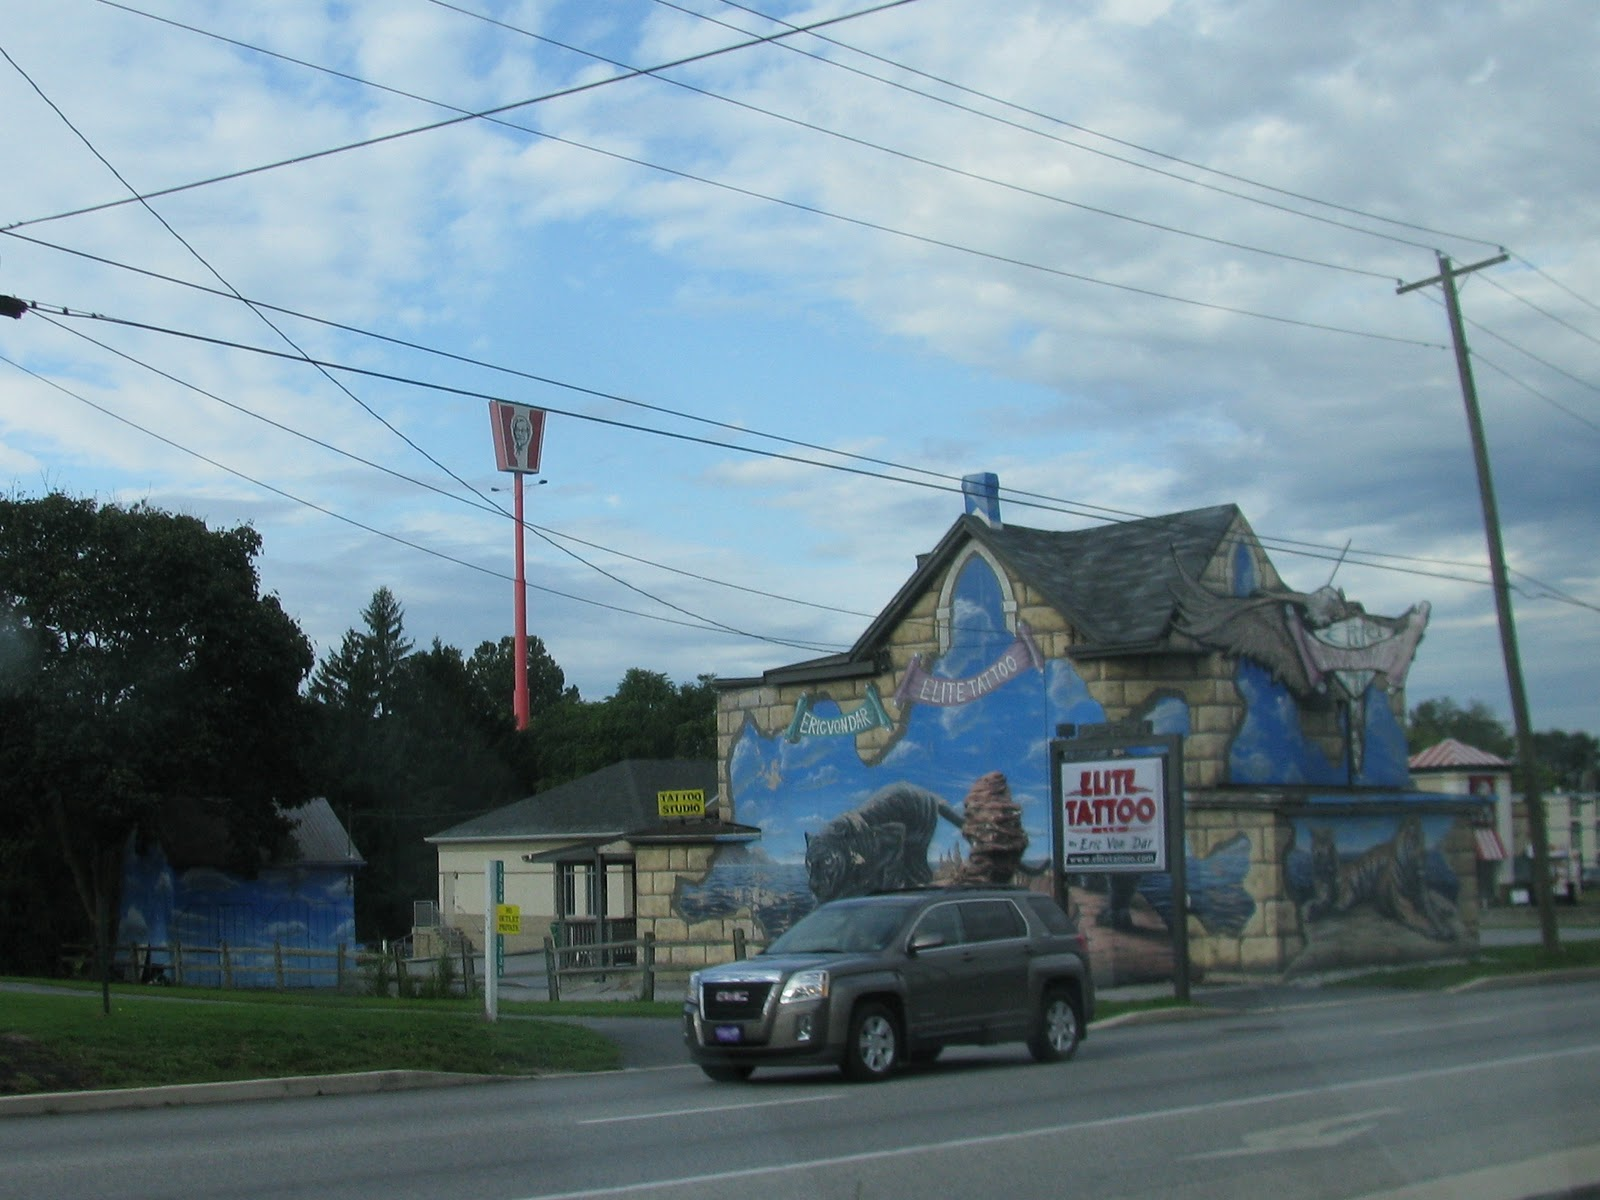 Wheres Liz 2011 The Lincoln Highway Pa Town Car Tattoo Murals On This Building Attracted My Attention Anyone